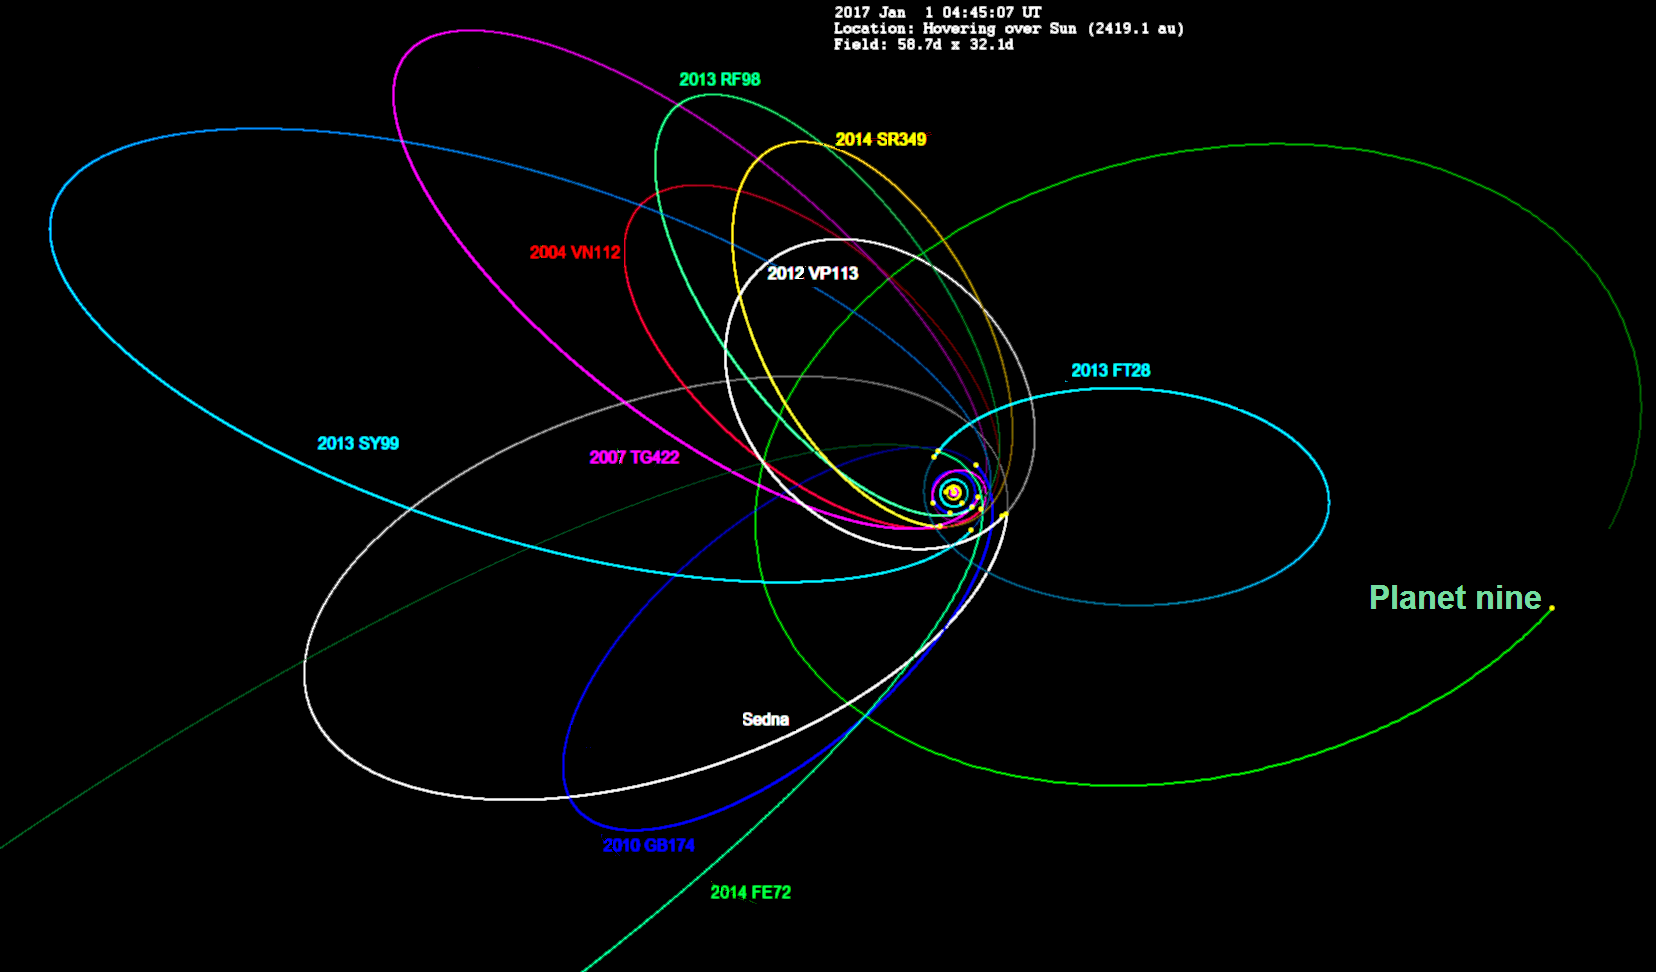 File:Planet nine-etnos now.png - Wikimedia Commons